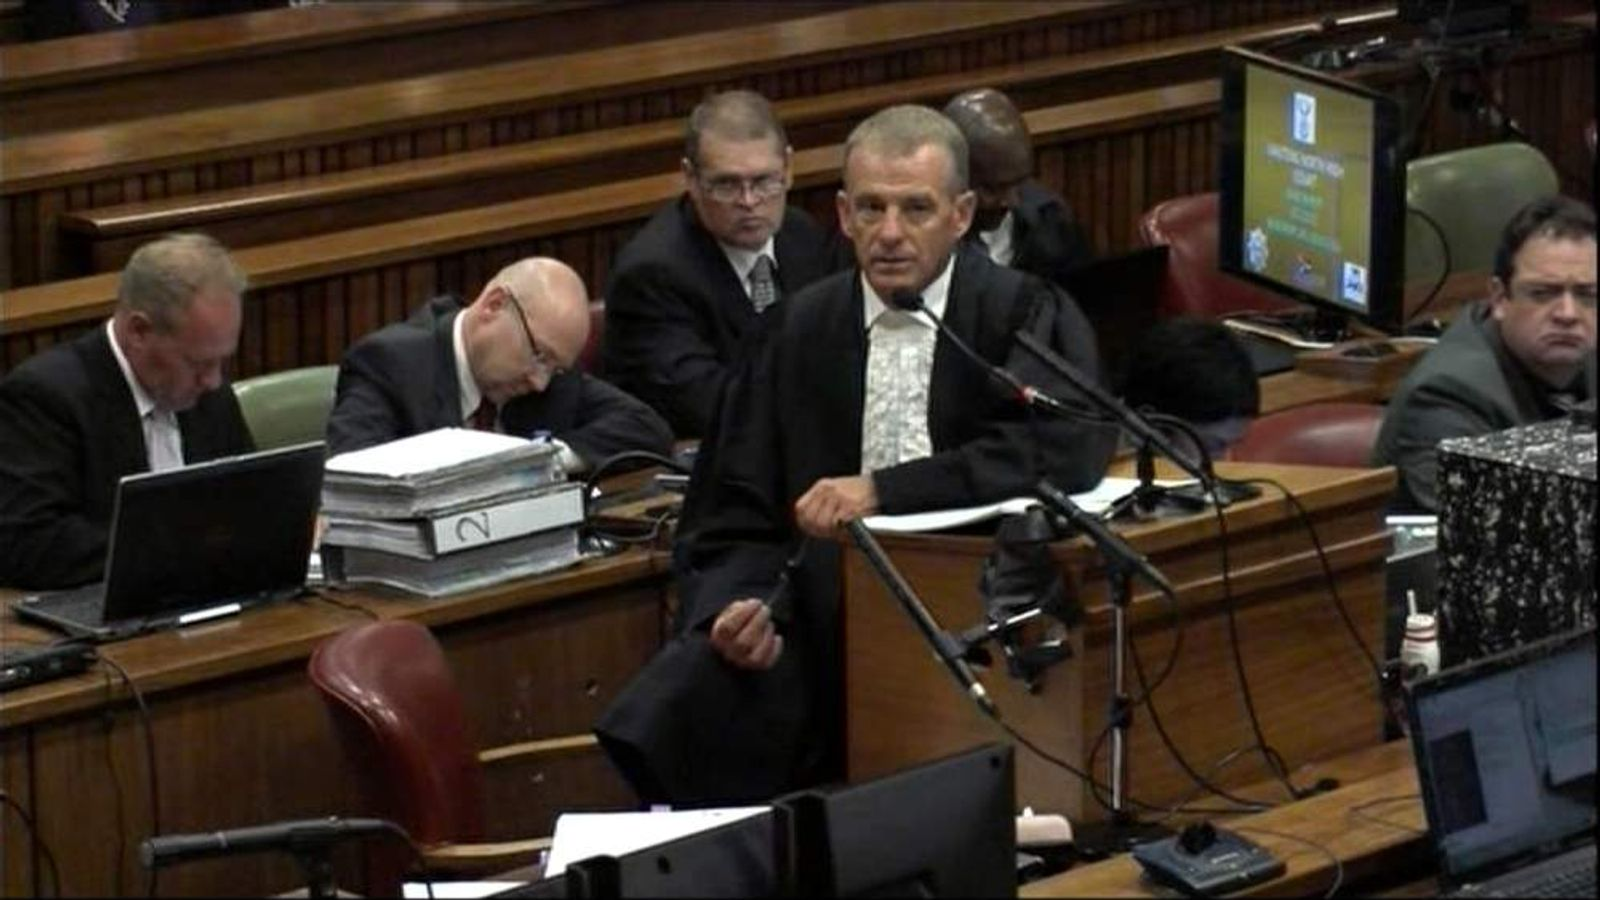 Gerrie Nel questions Oscar Pistorius on who should be blamed